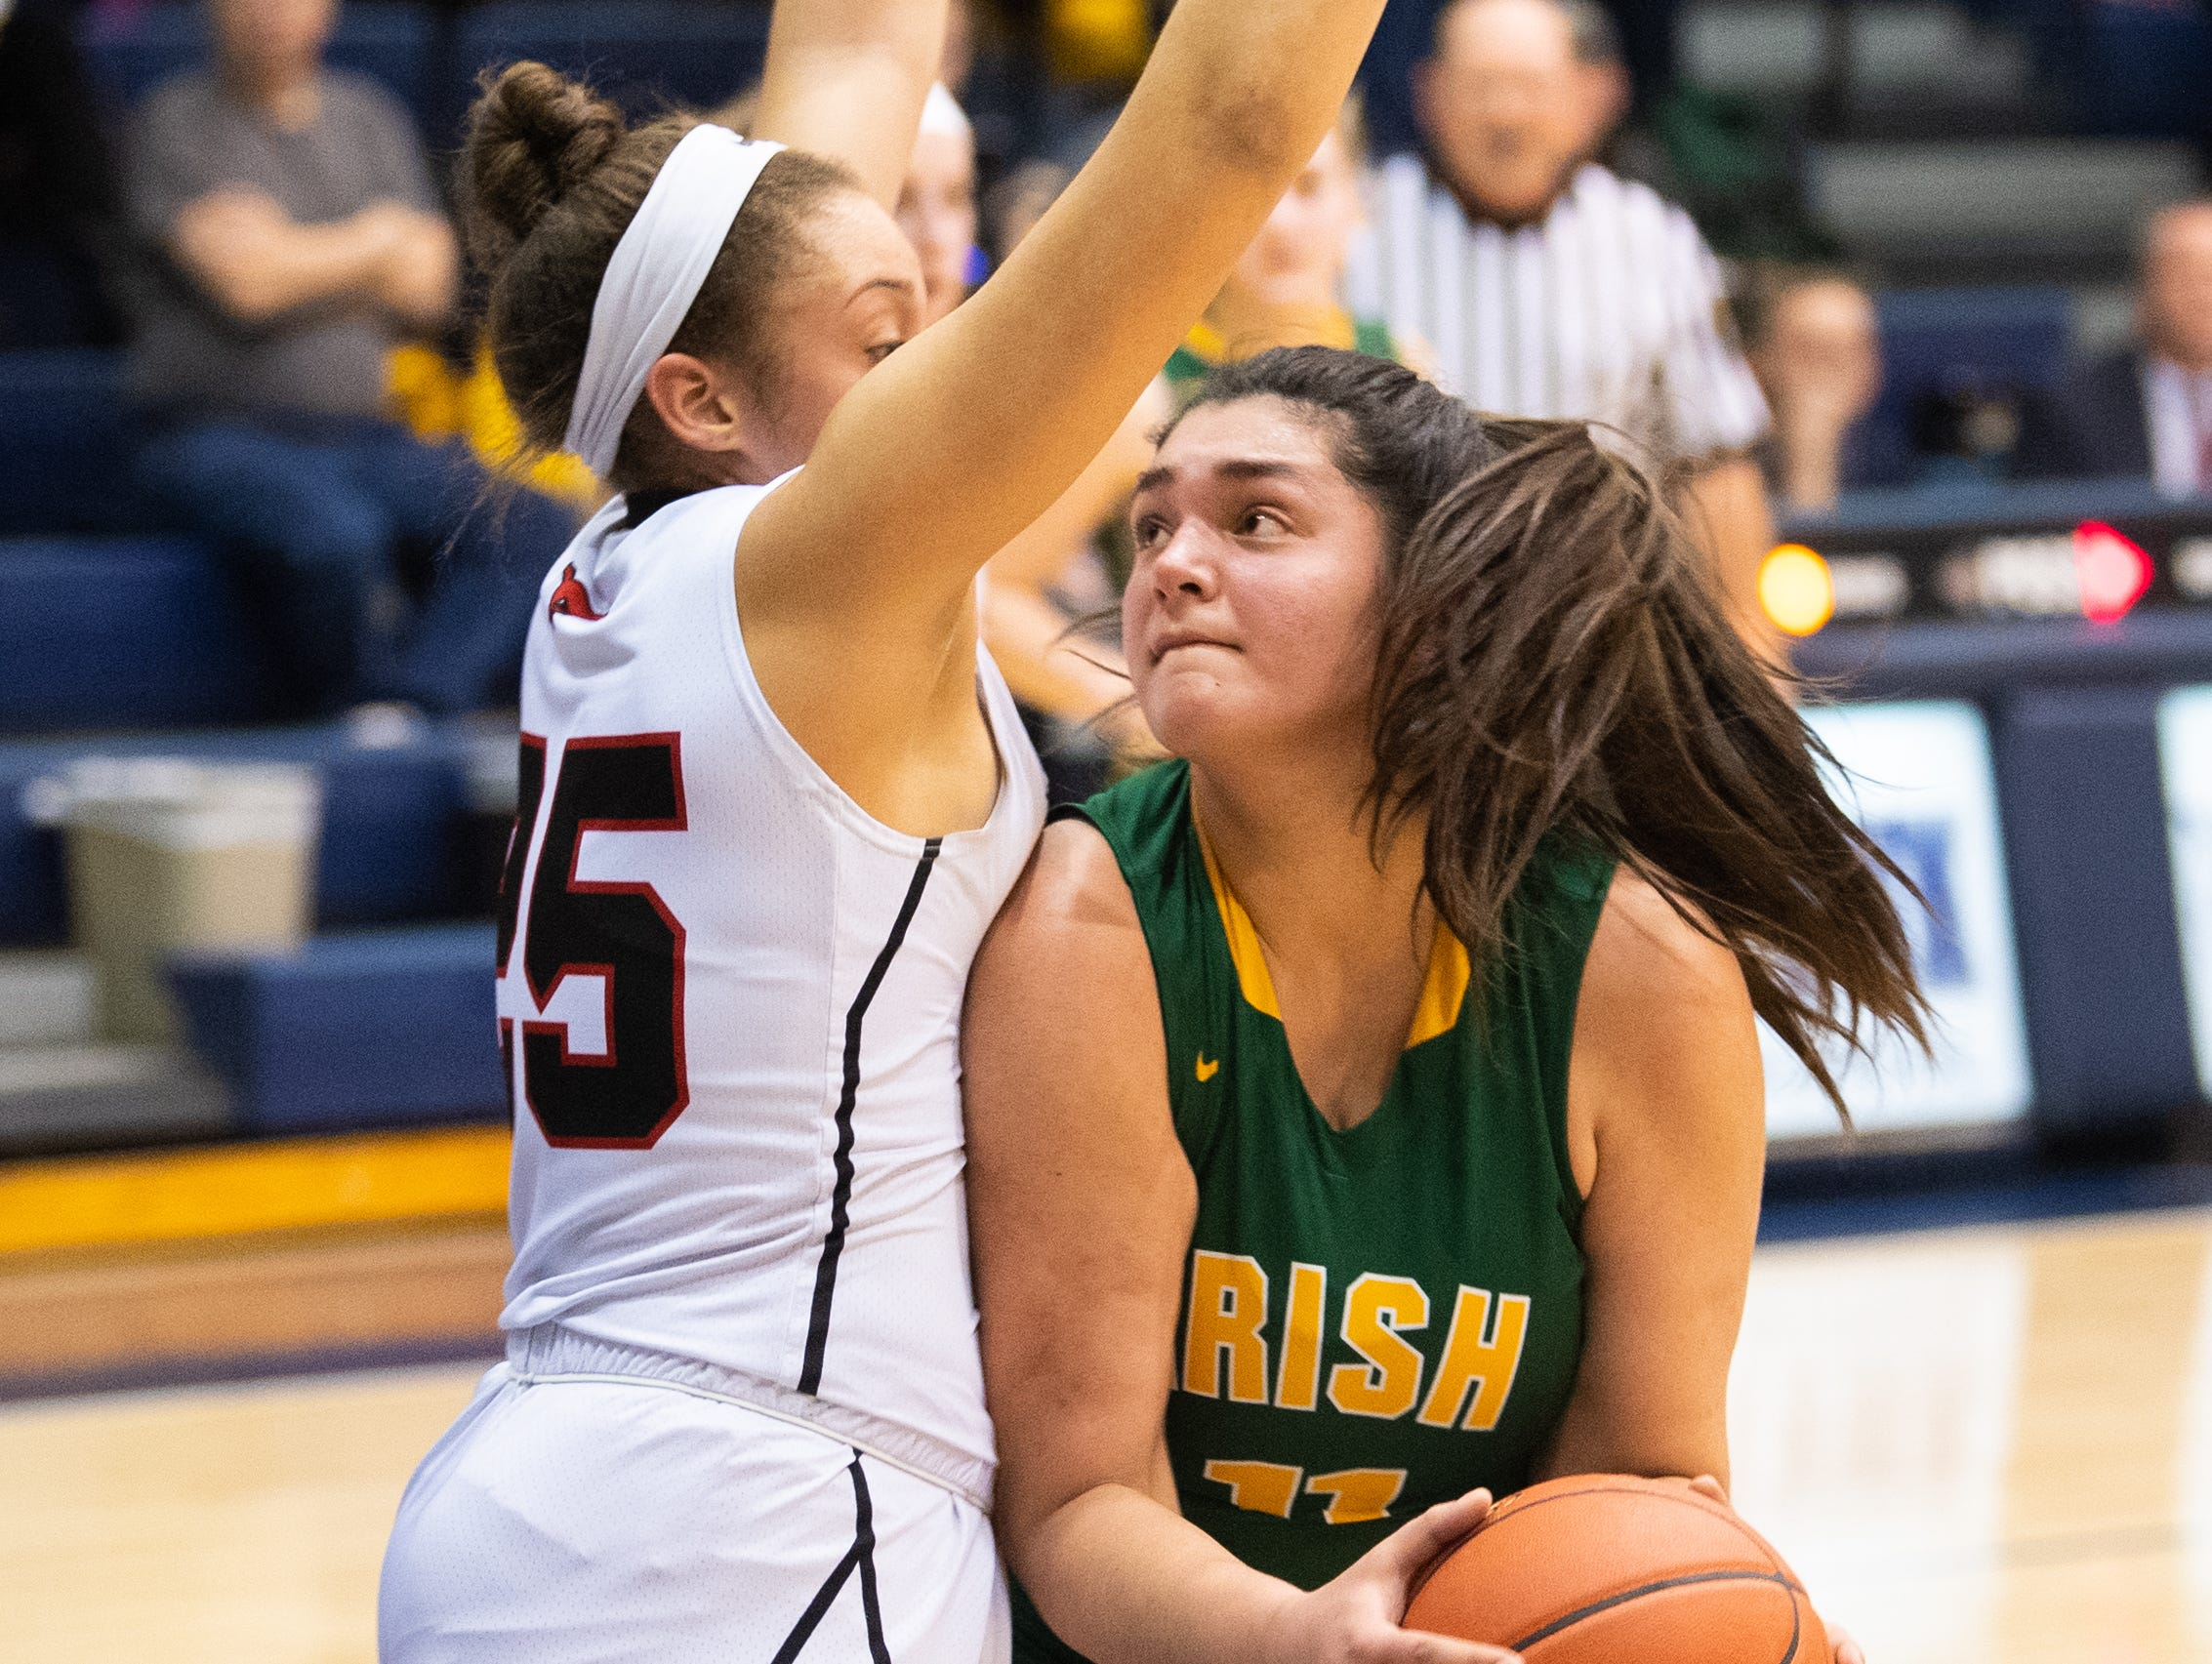 A. St. Rose (25) of Southwestern guards Gabby Coley (11) of York Catholic during the YAIAA girls' basketball quarterfinal game between South Western and York Catholic, February 8, 2019 at Dallastown Area High School. The Mustangs lead the Fighting Irish at halftime 24 to 10.